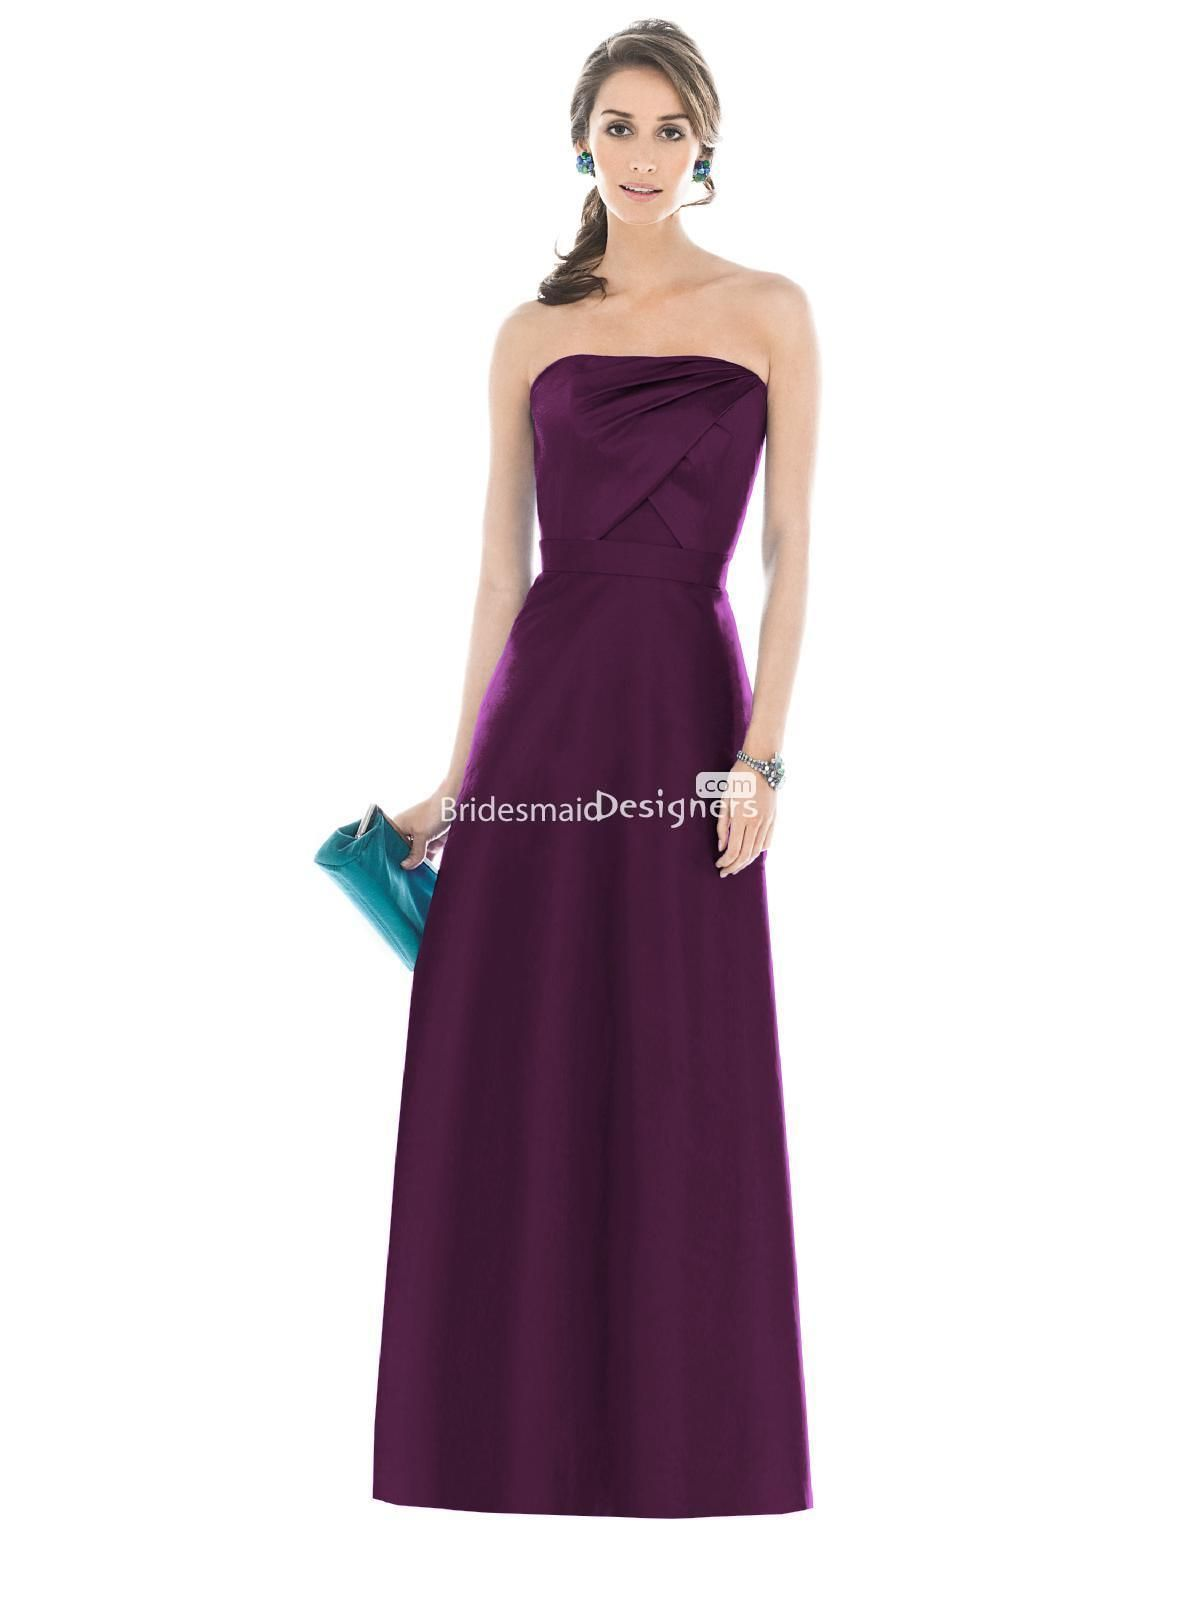 1000  images about Plum Bridesmaid Dresses on Pinterest  Satin ...